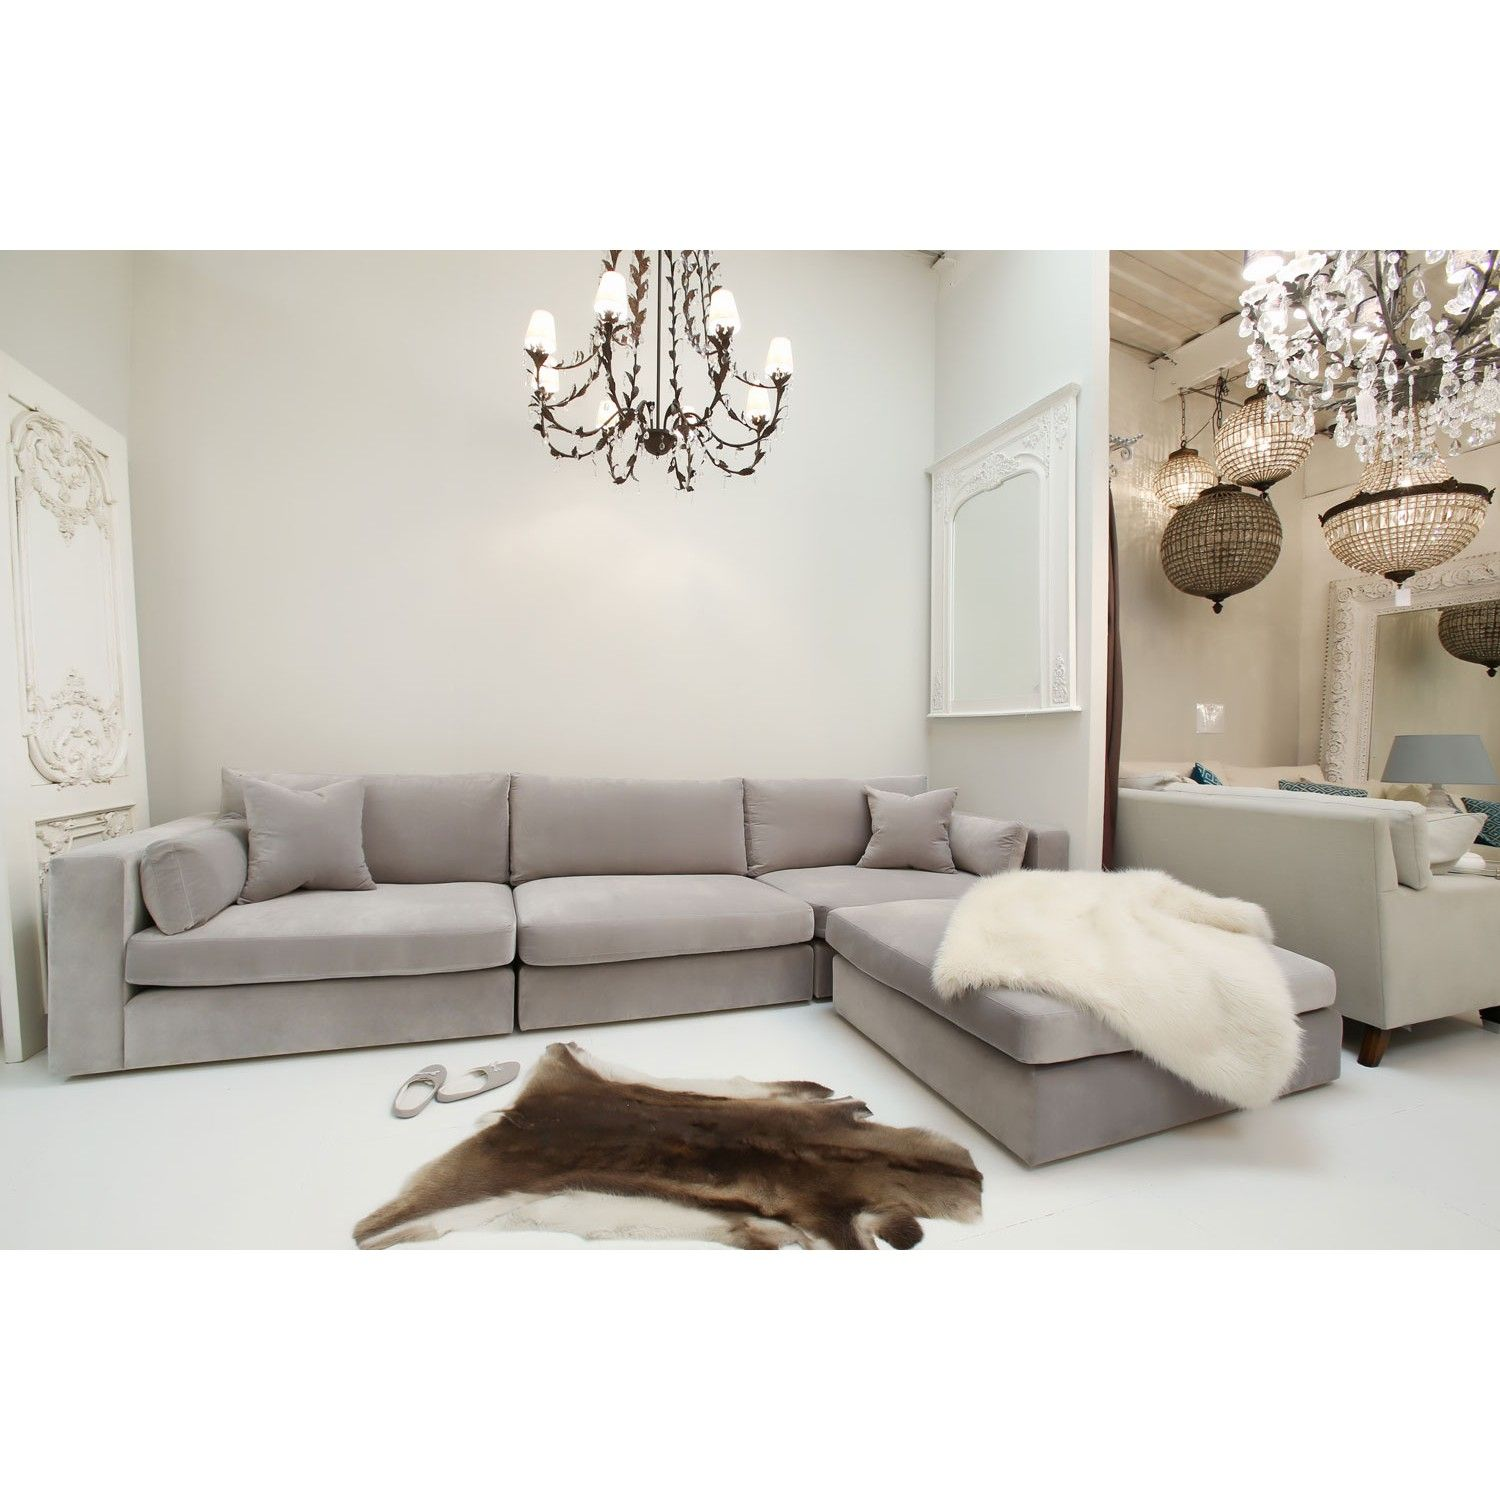 Sofas On London Old Fashioned For Sale Lansdowne L Shape Sofa Handmade In